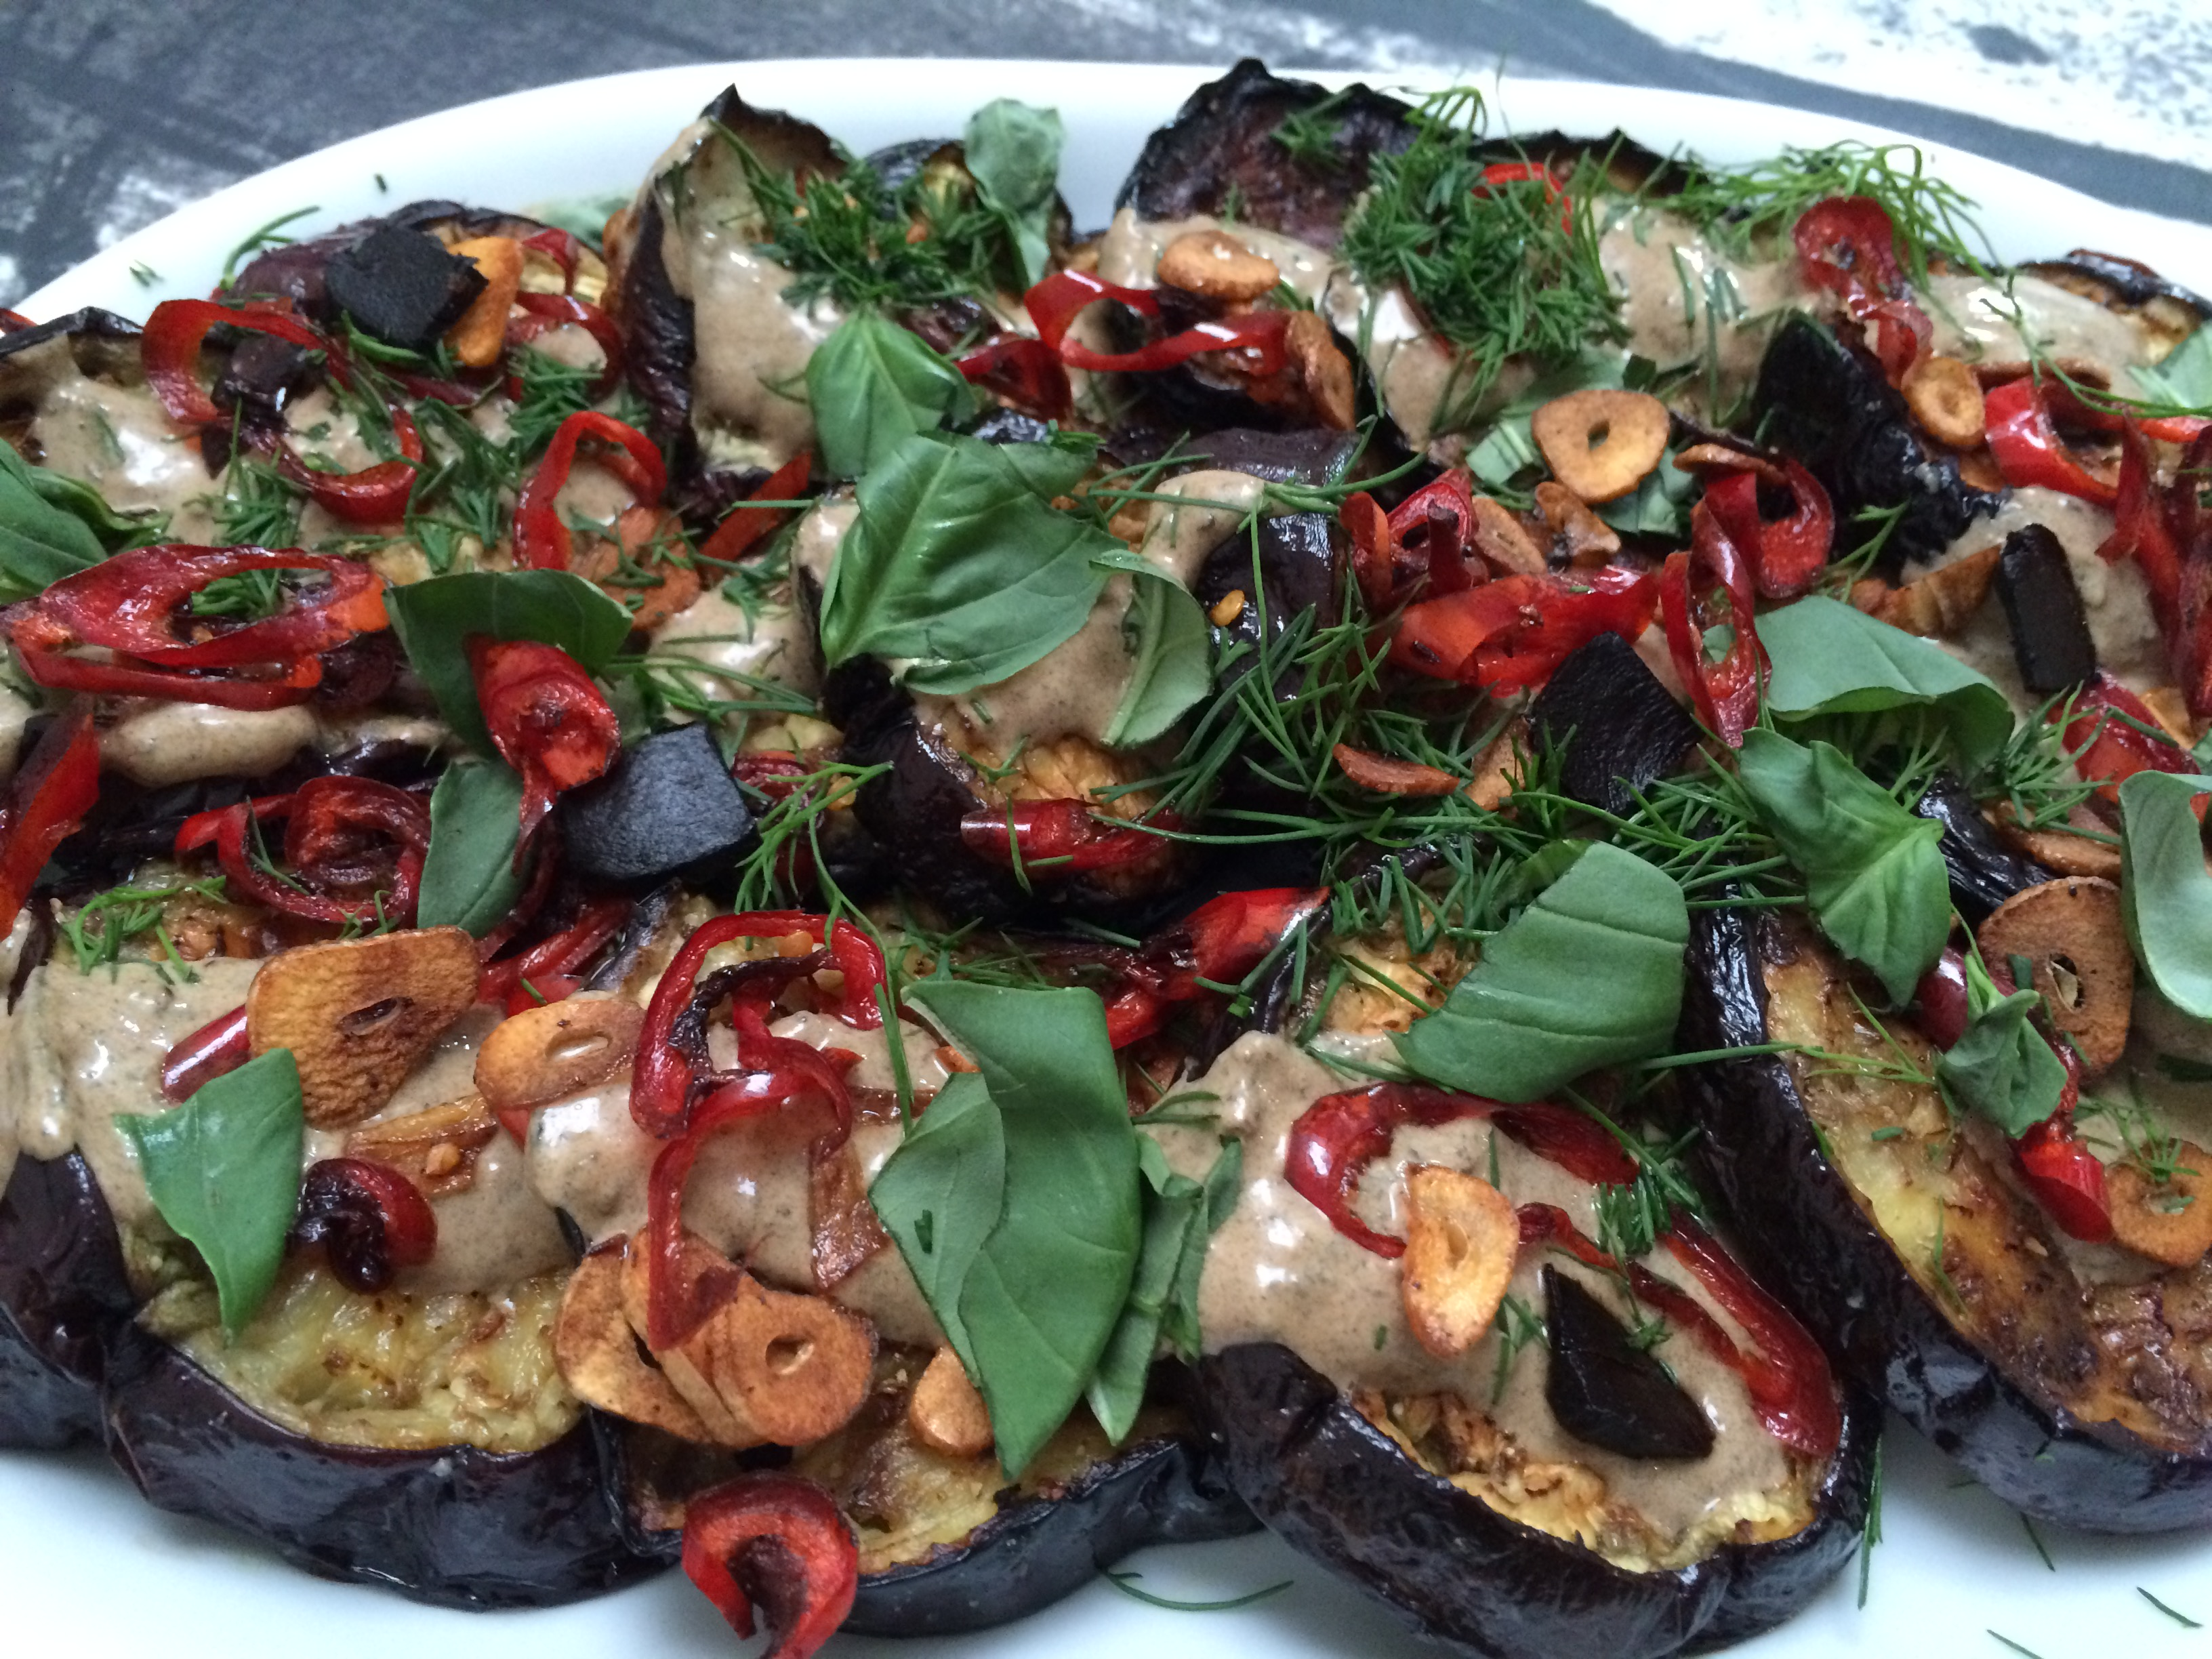 Aubergine with black garlic